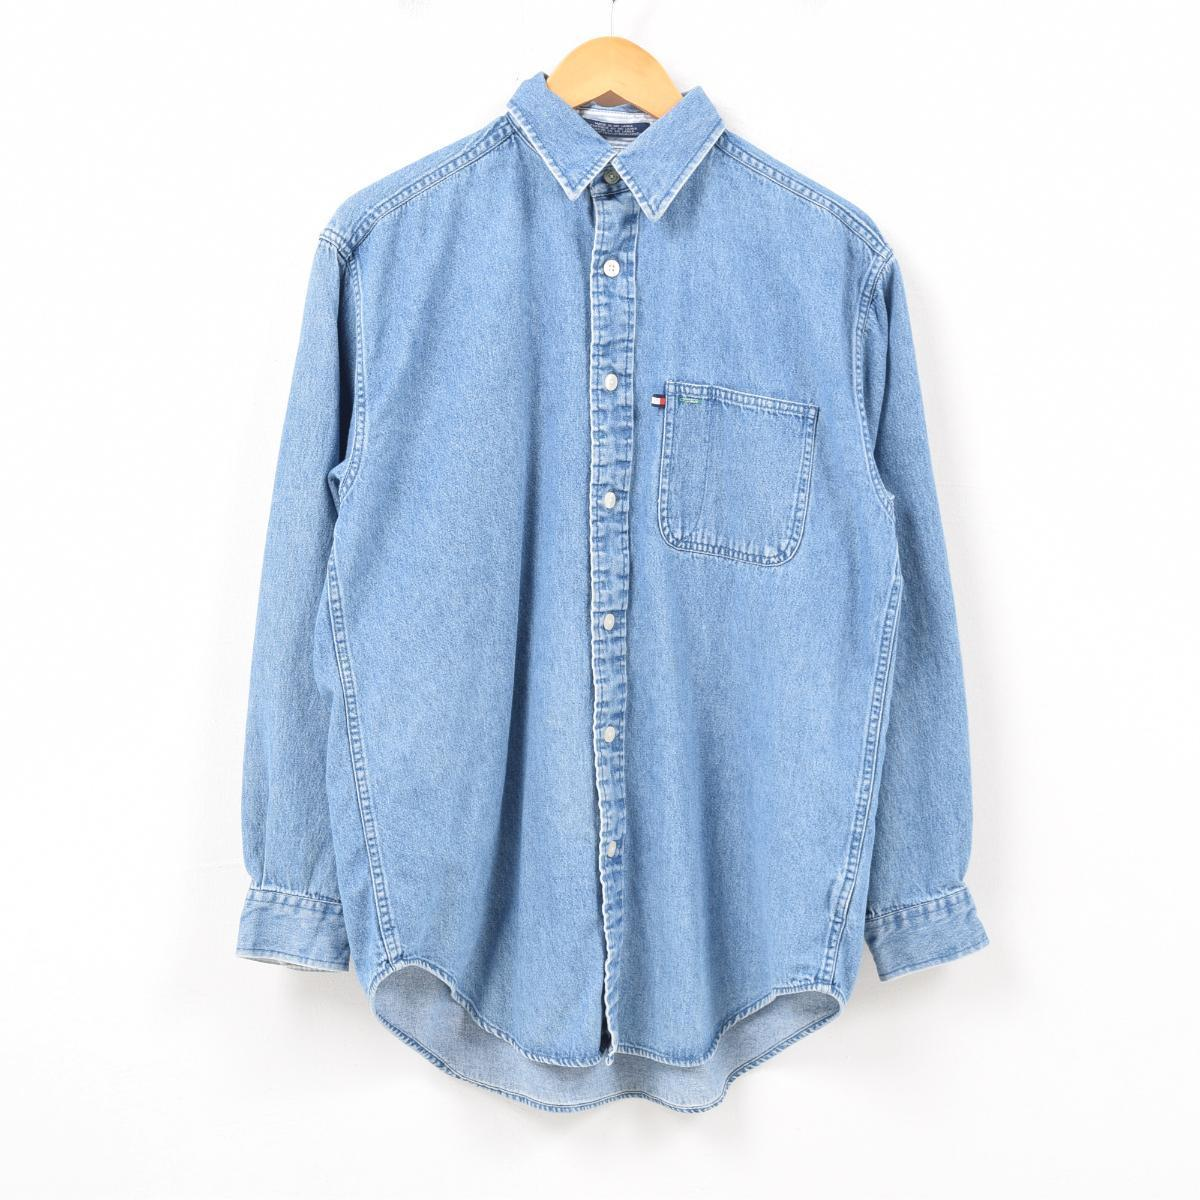 36697ce6 90s トミーヒルフィガー TOMMY HILFIGER JEANS long sleeves denim shirt men S /wbb0998  ...